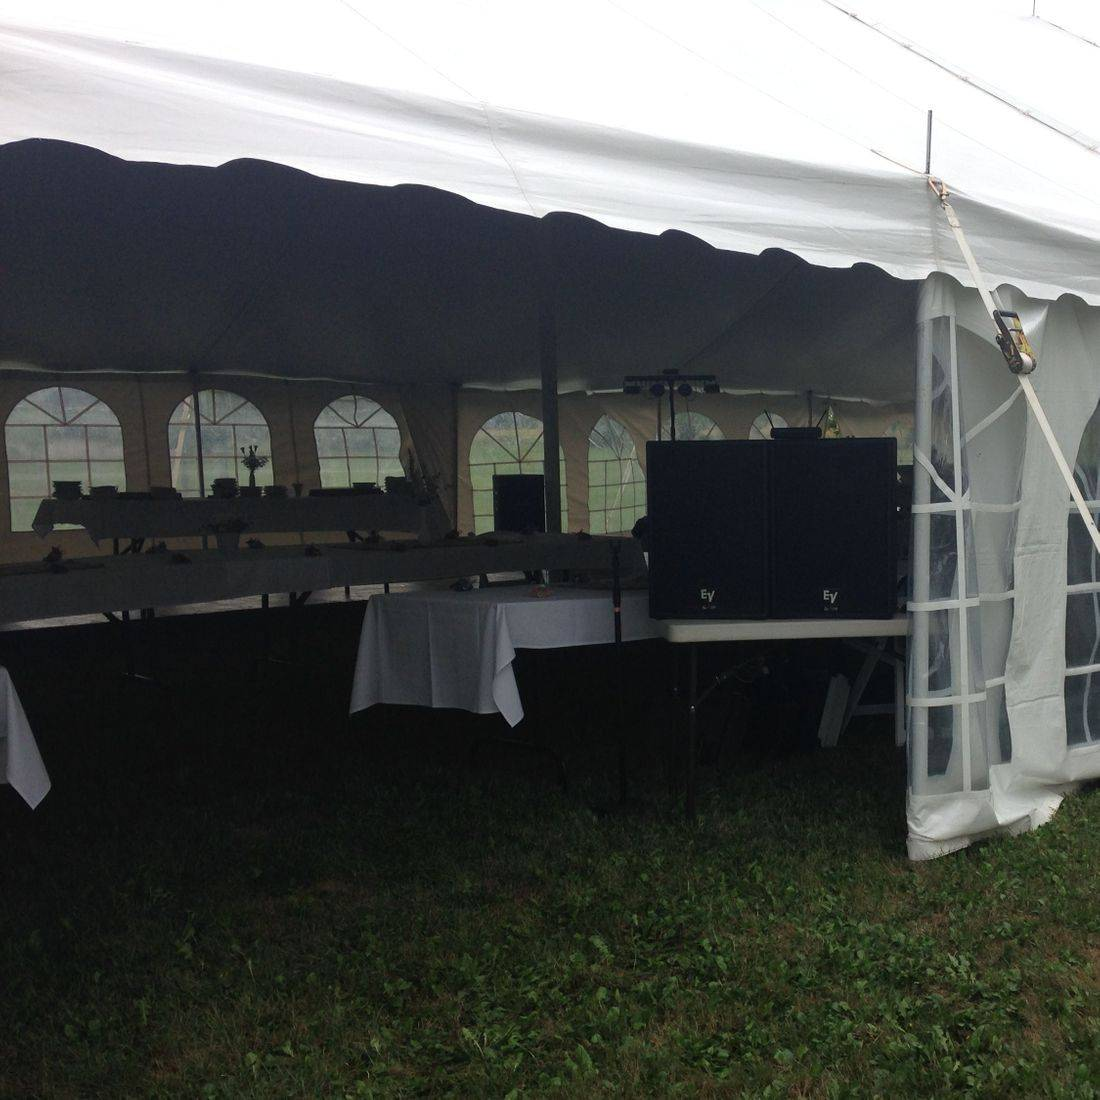 Mr. Productions DJ Service providing outdoor Wedding DJ Services in the Hamilton area.